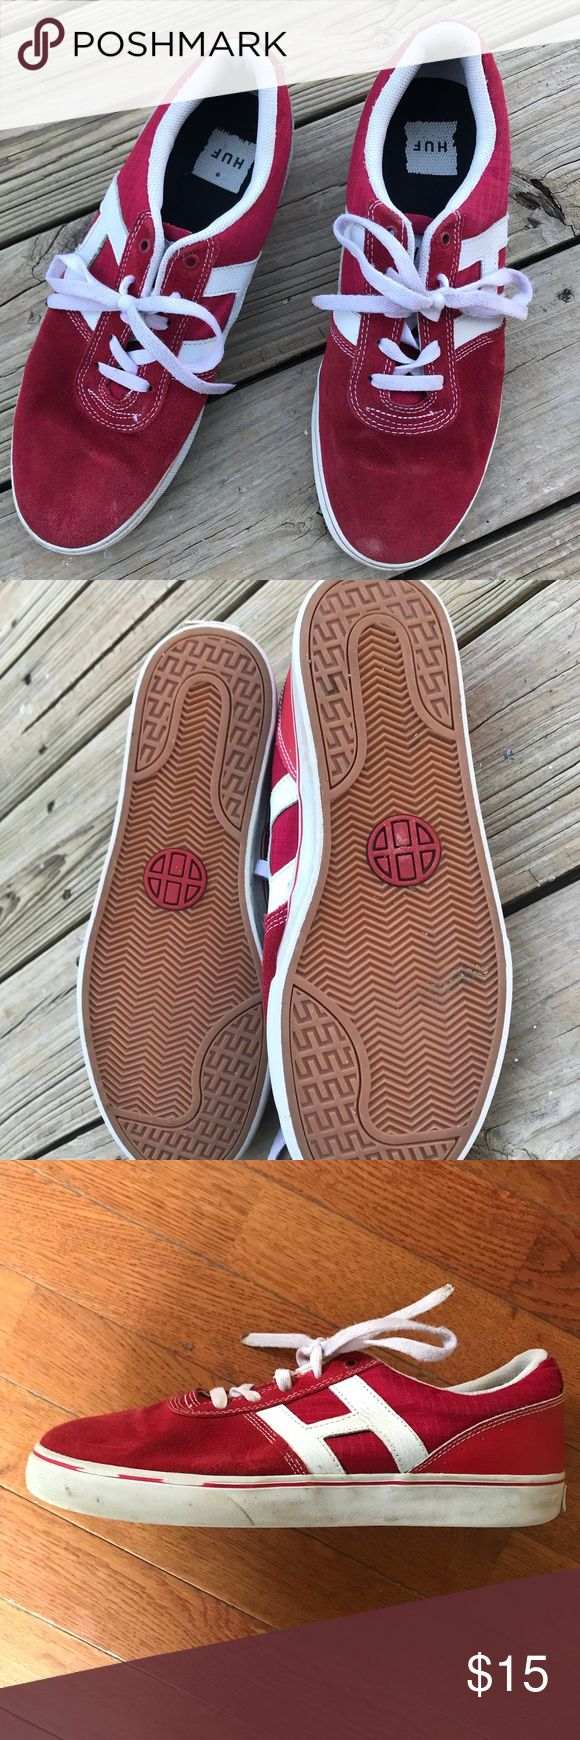 HUF Men's red skate shoes Worn but still have life. Suede skate shoes. Unskated in. HUF Shoes Sneakers